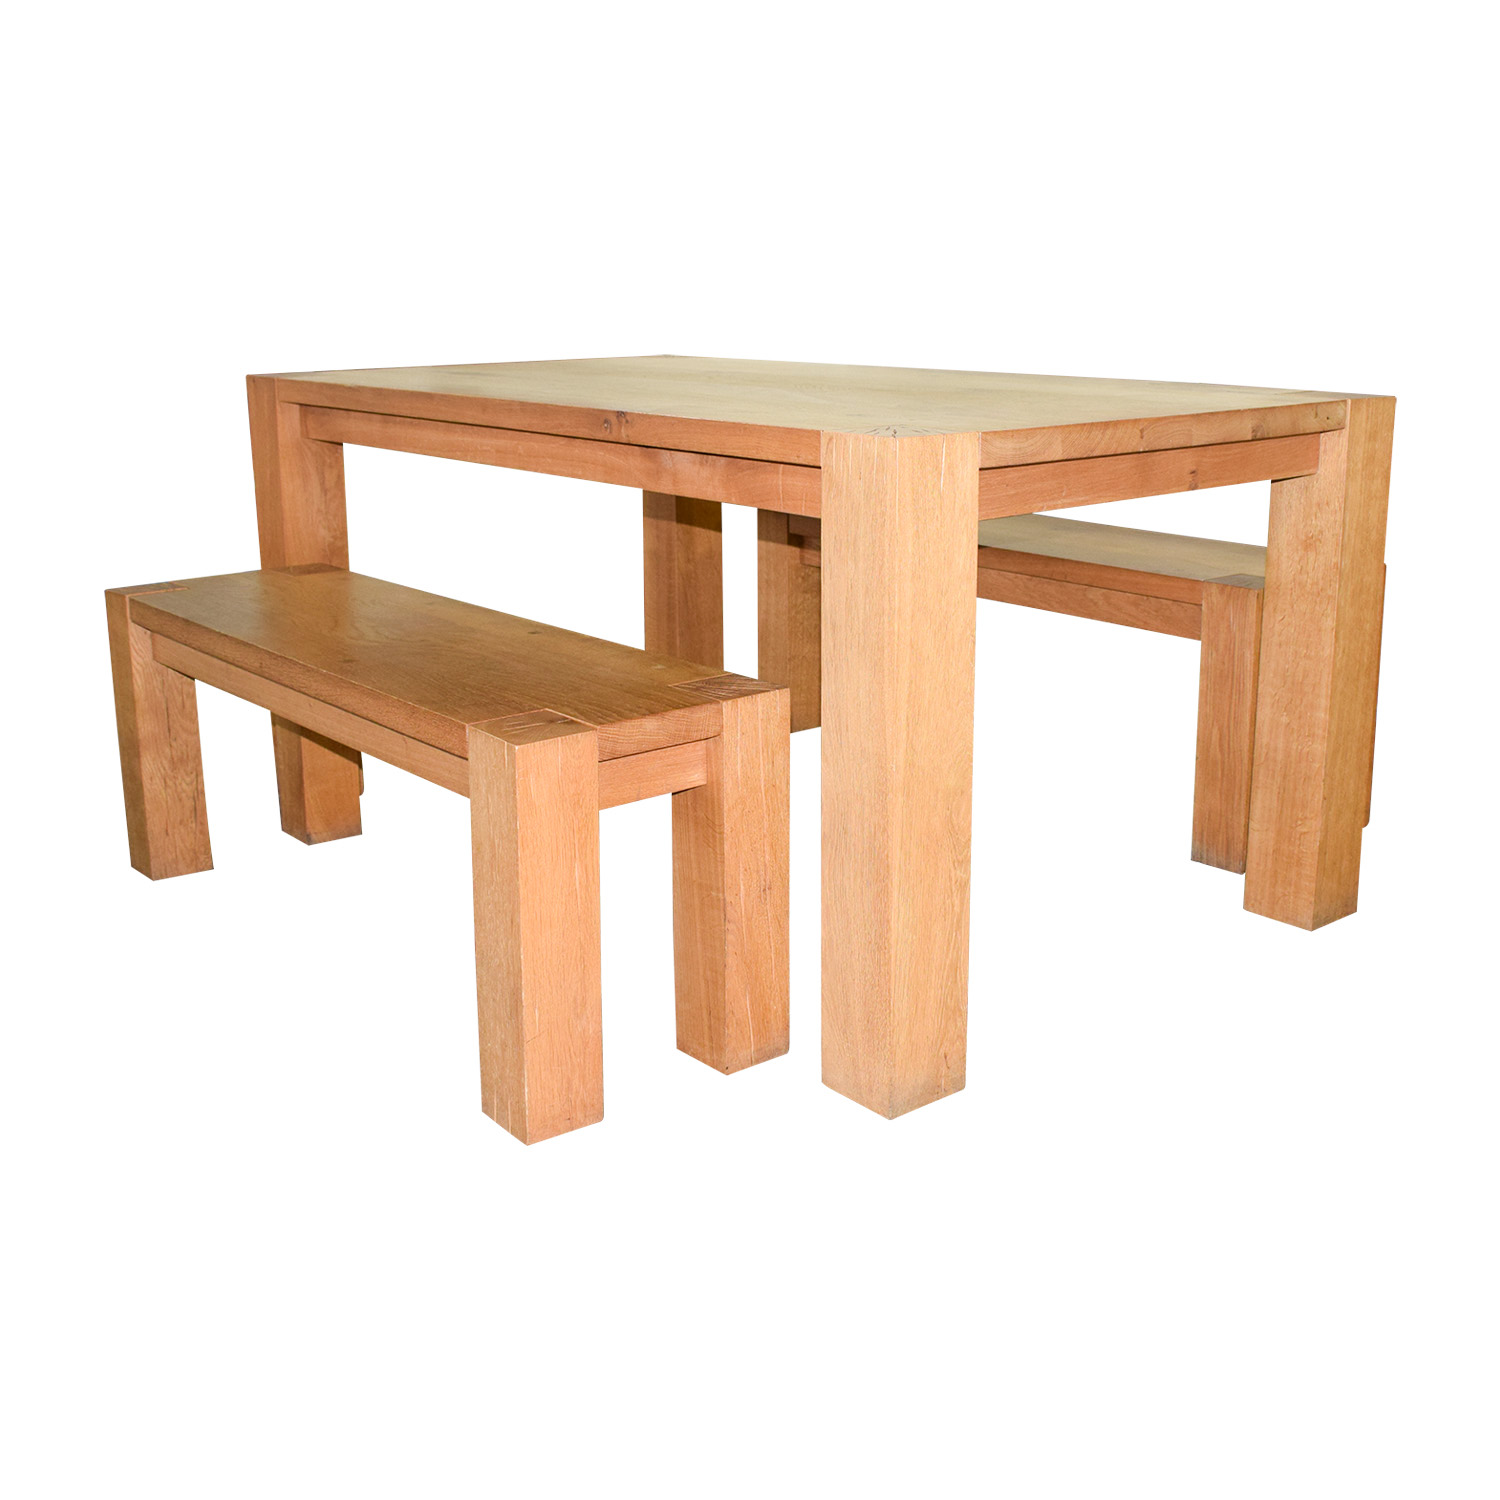 Crate Barrel Big Sur Natural Dining Table With Benches